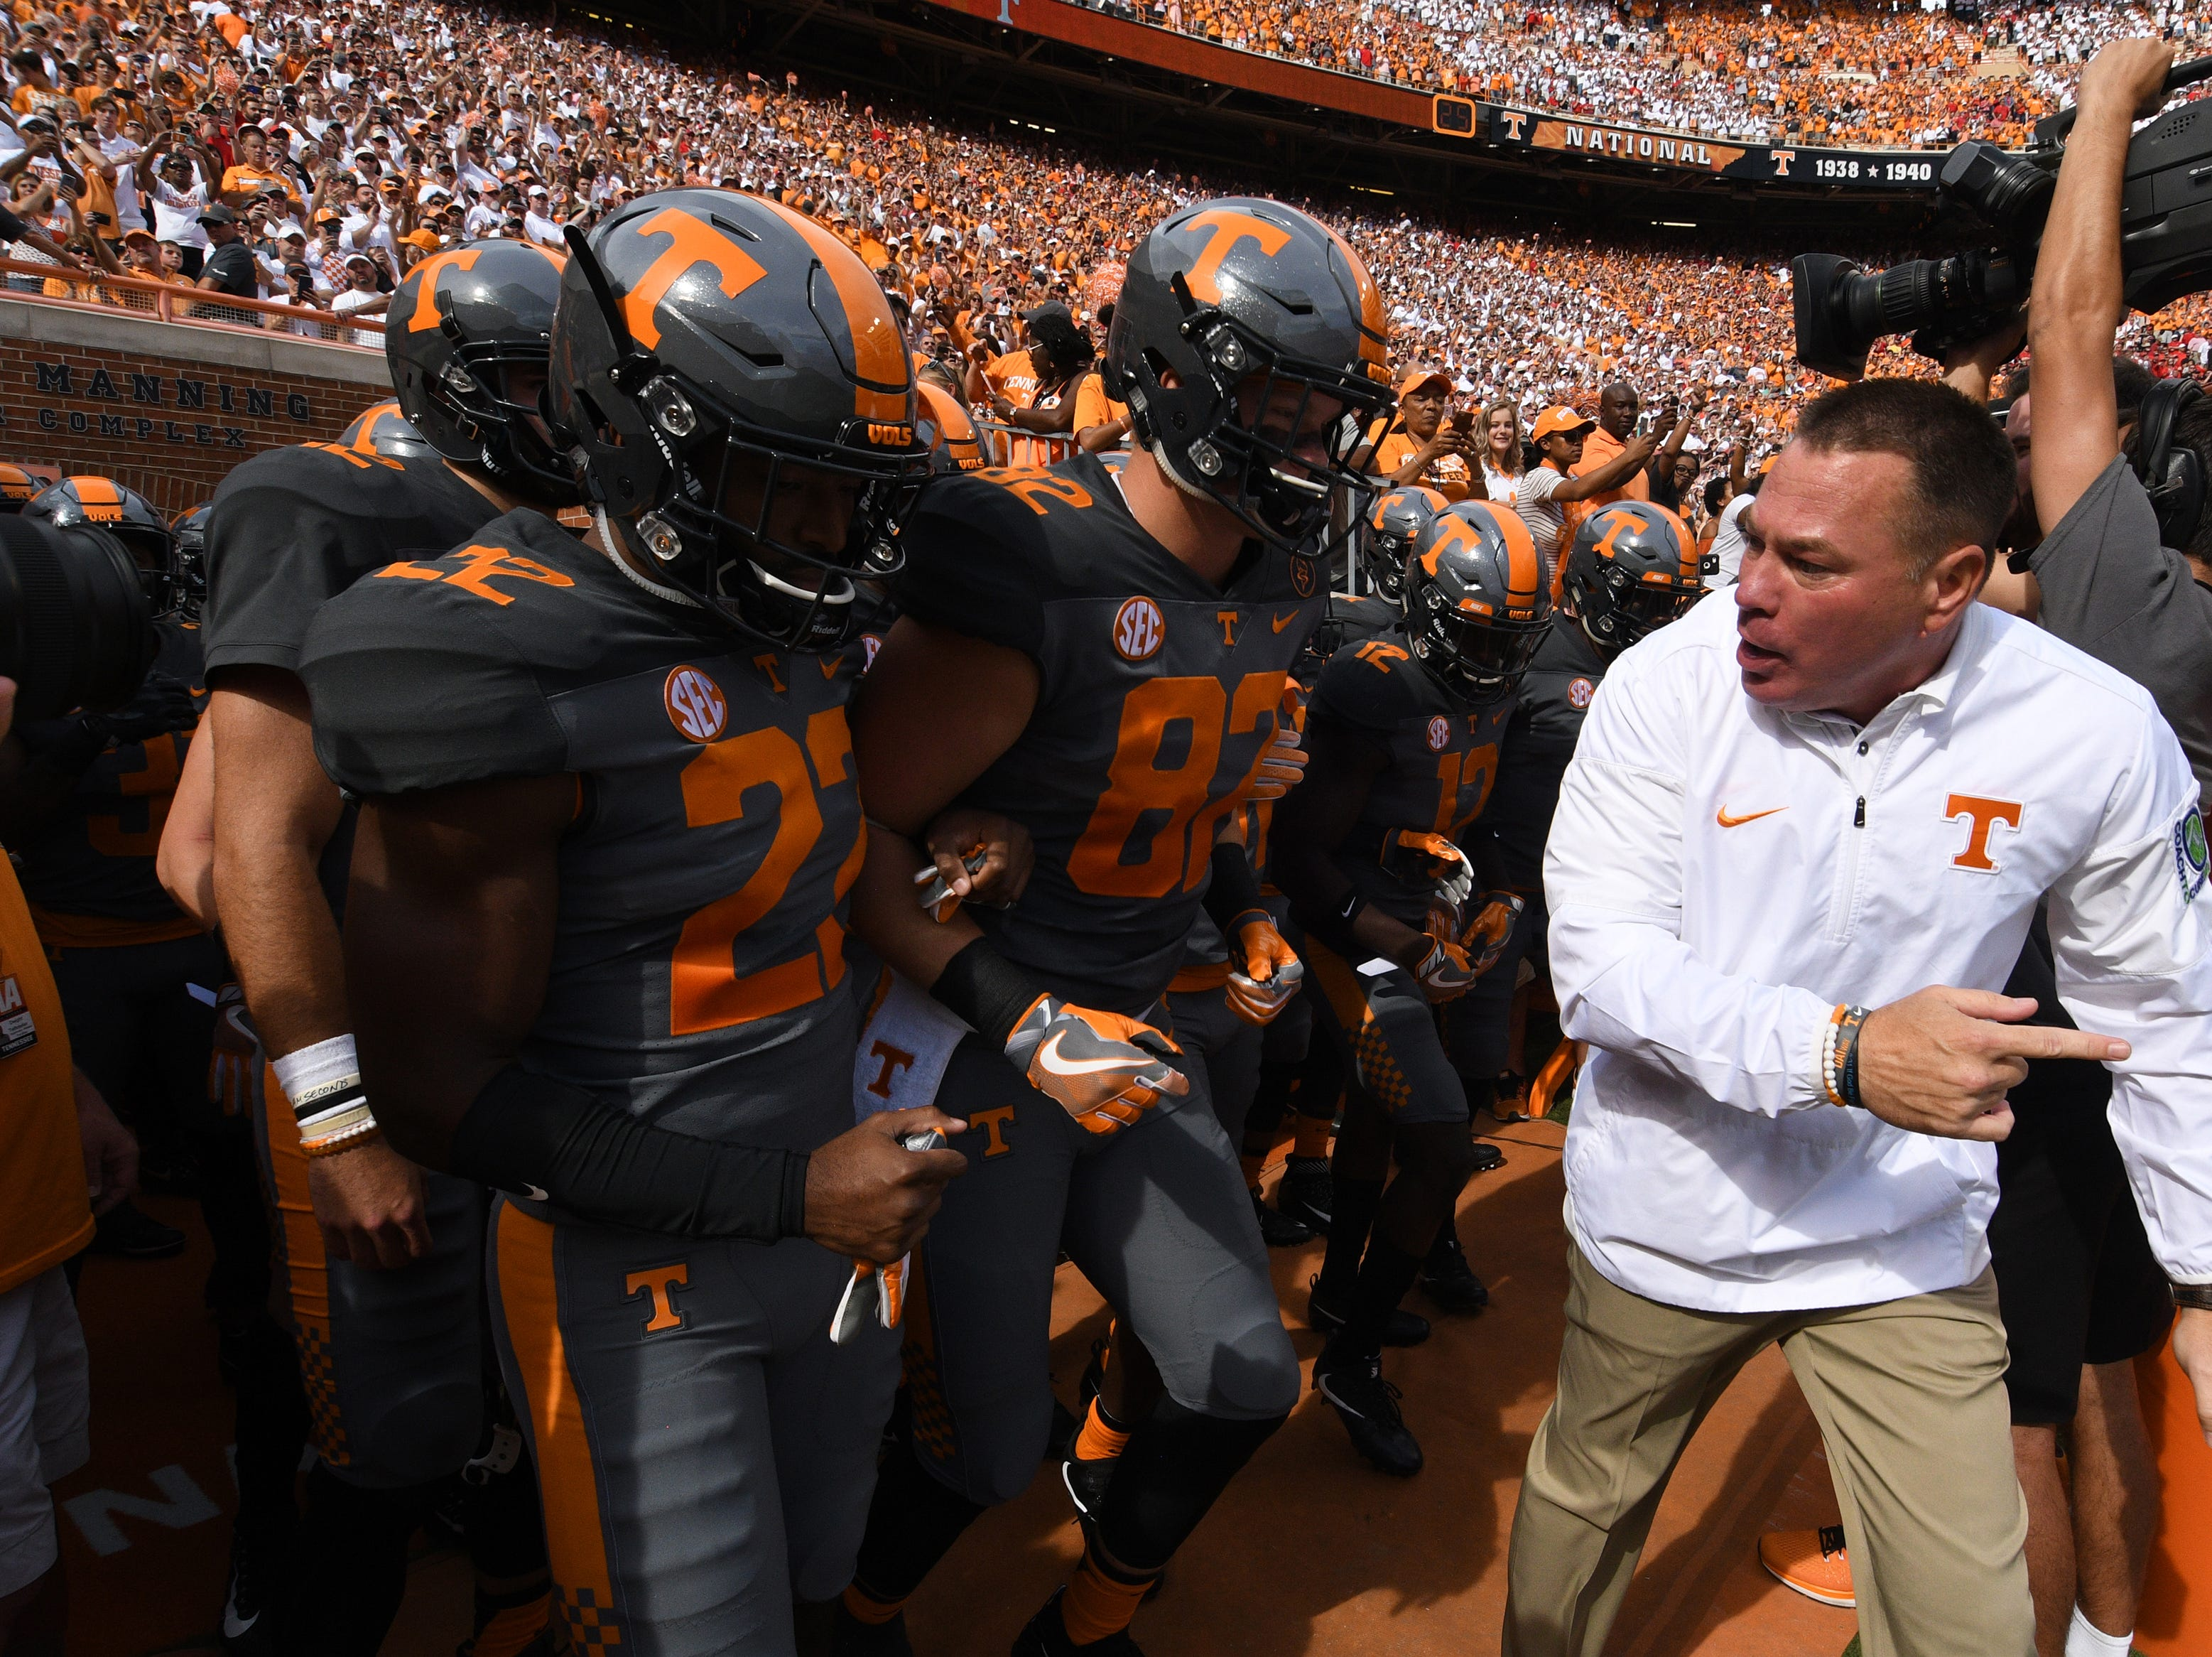 Tennessee Head Coach Butch Jones runs out of the locker room with the team during the Tennessee Volunteers vs. Georgia Bulldogs game at Neyland Stadium in Knoxville, Tennessee on Saturday, September 30, 2017.